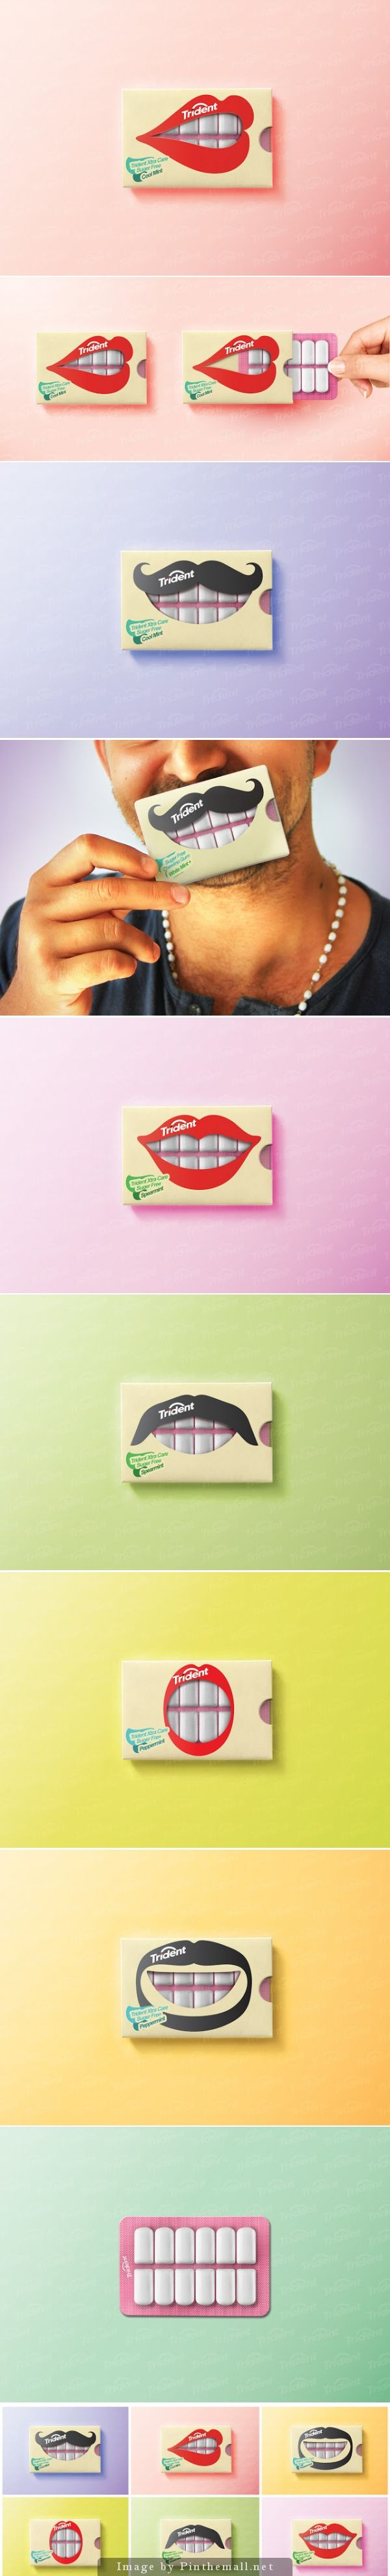 Trident Gum (Concept)  Designer: Hani Douaji  Location: Preston, United Kingdom  Type of work: Packaging Concept